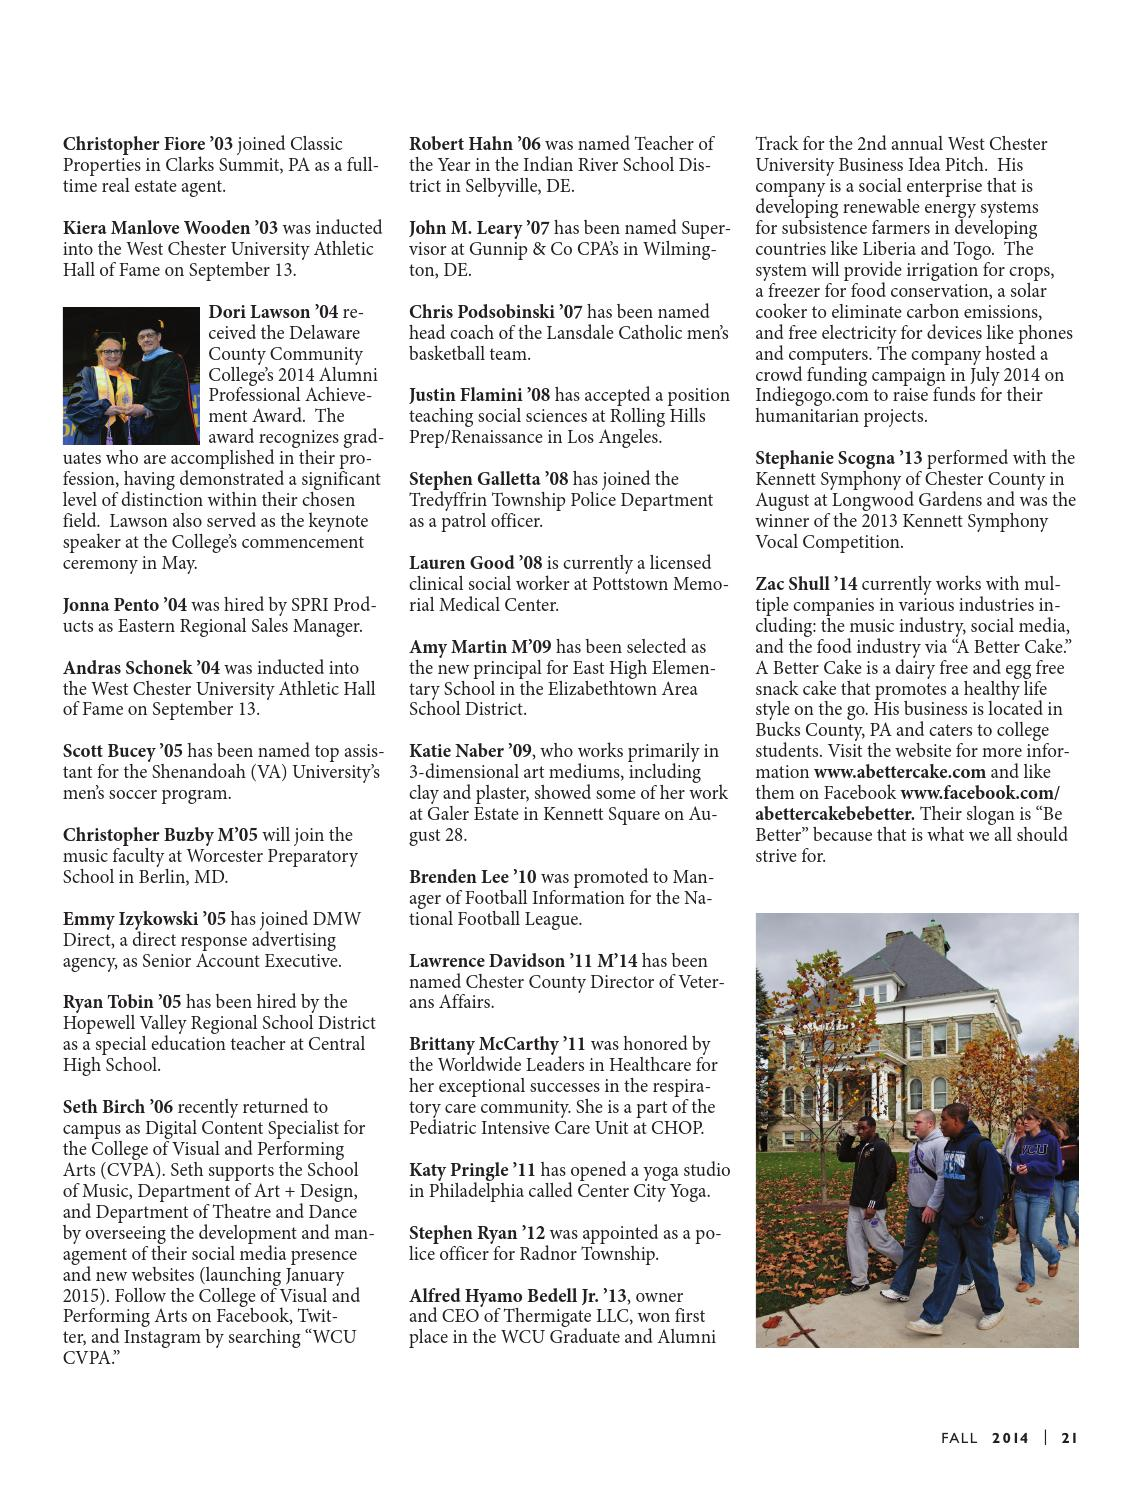 West Chester University Magazine, Fall 2014 by West Chester